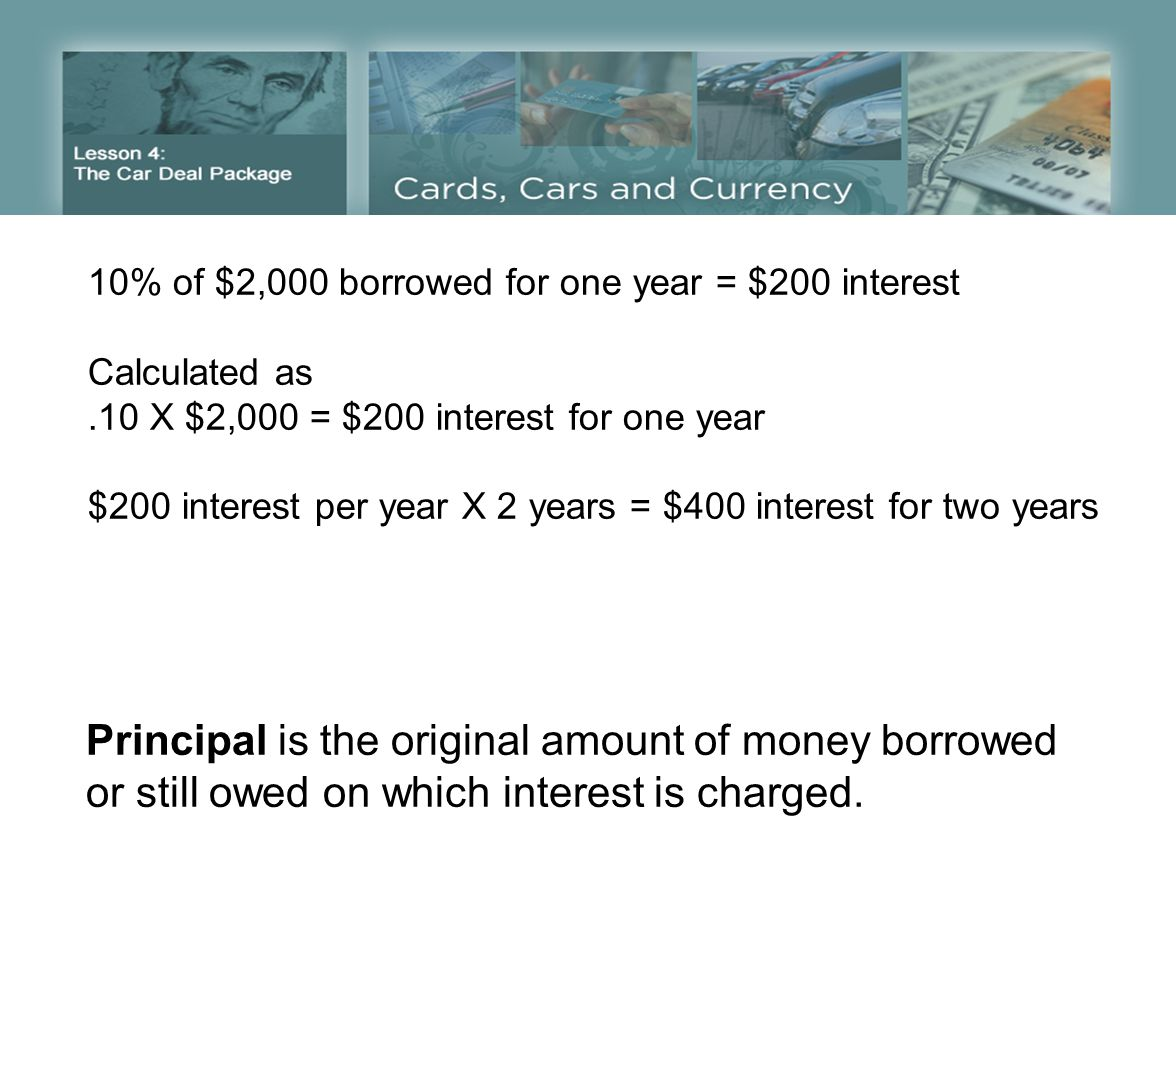 10% of $2,000 borrowed for one year = $200 interest Calculated as.10 X $2,000 = $200 interest for one year $200 interest per year X 2 years = $400 interest for two years Principal is the original amount of money borrowed or still owed on which interest is charged.